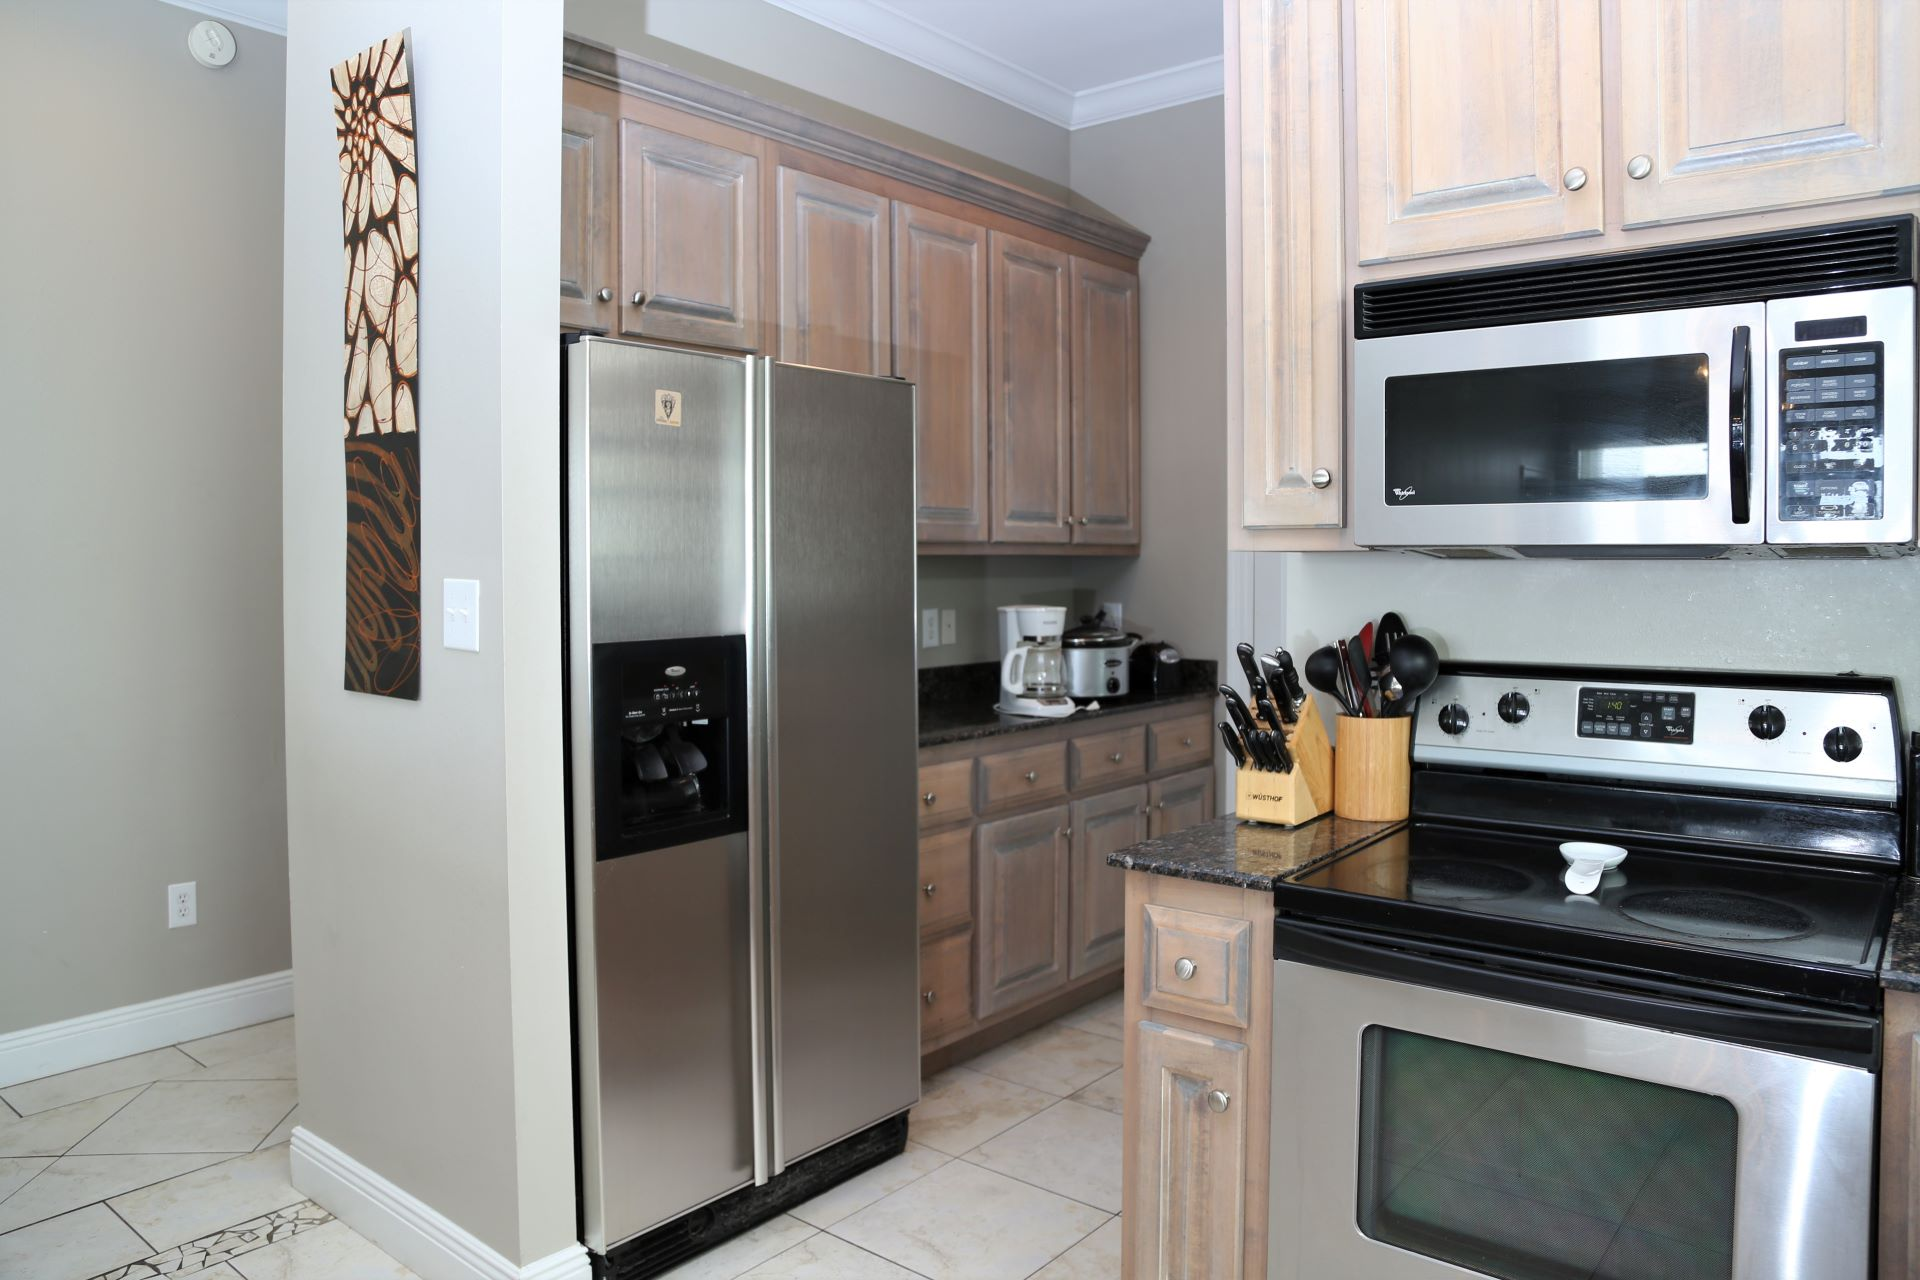 Fully equipped kitchen with all appliances.